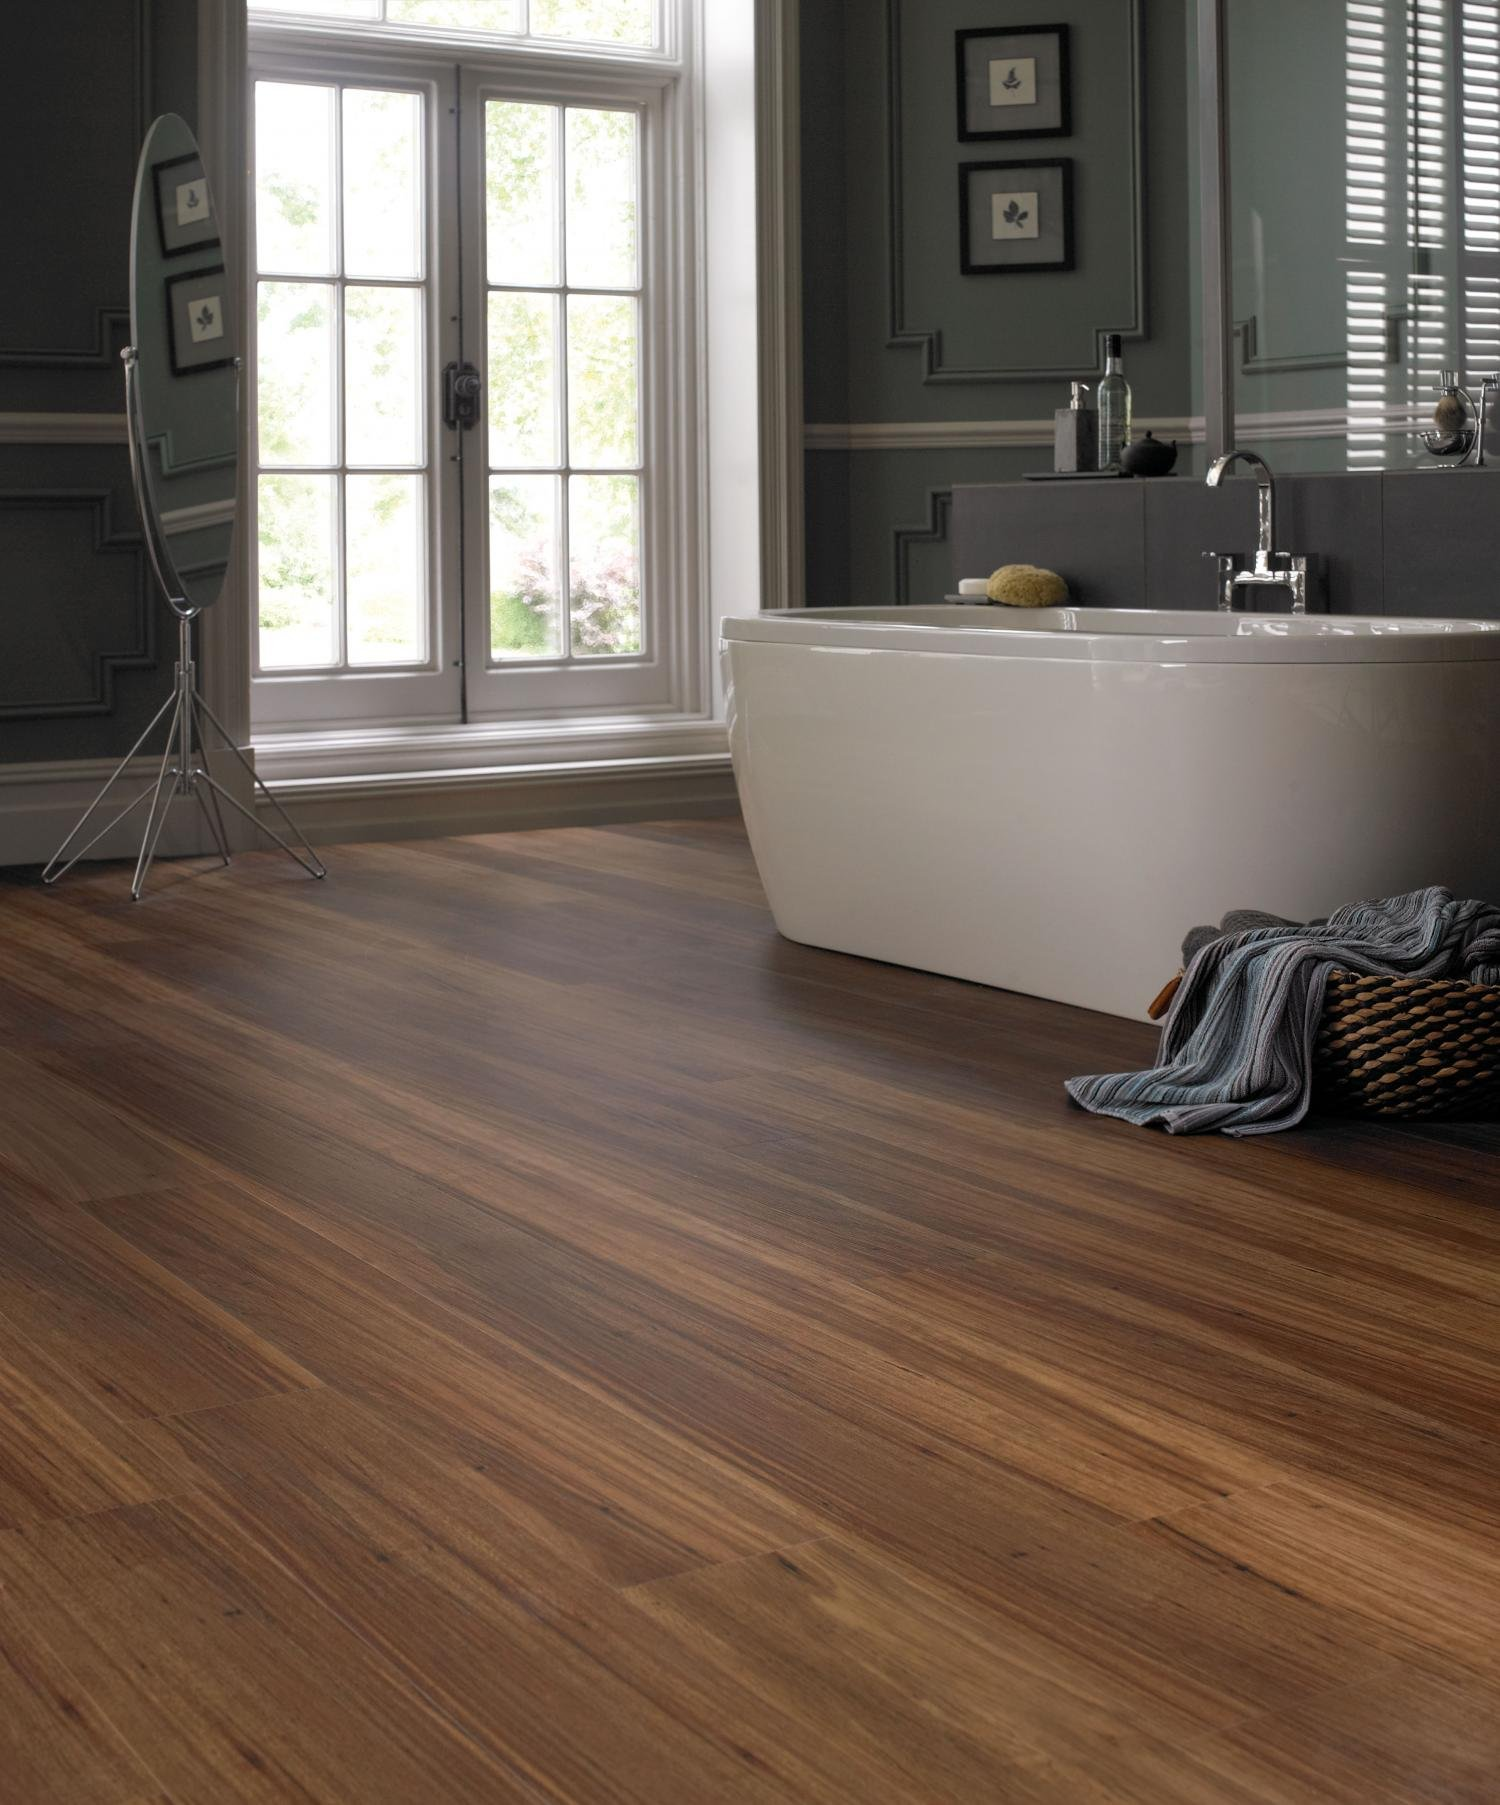 24 cool ideas and pictures of bathroom wood floot tiles